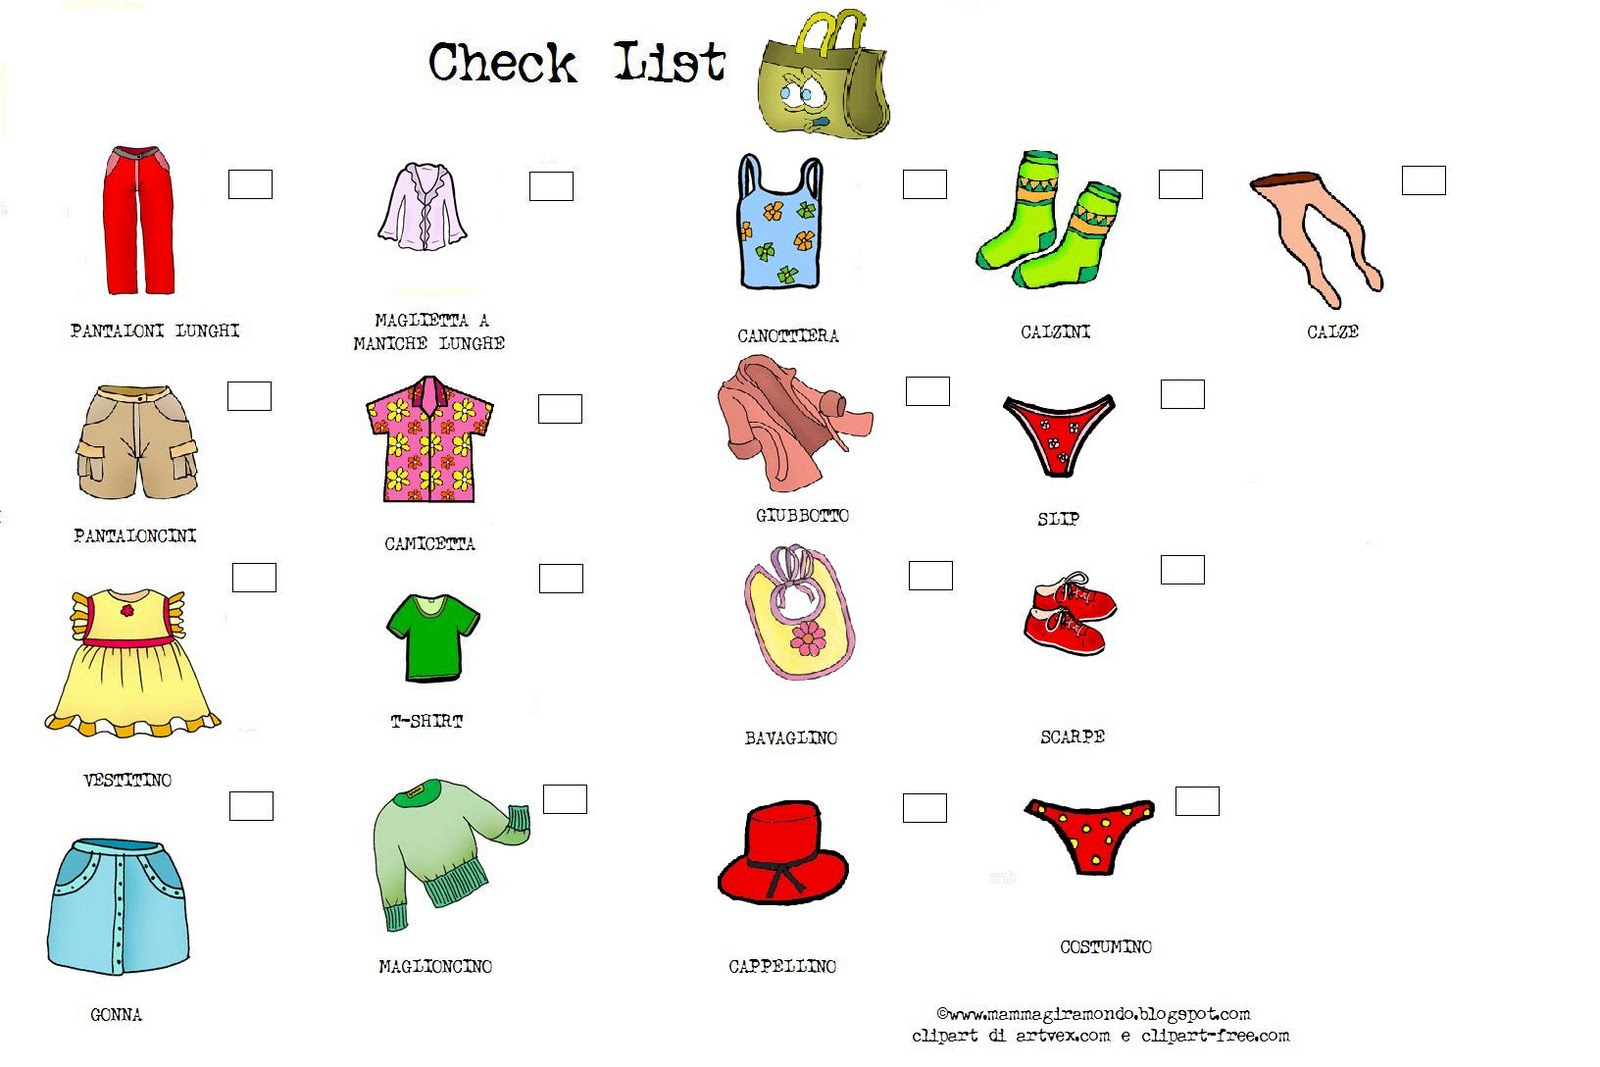 Tongue Tried Bilinguist Packing Checklist For Kids By